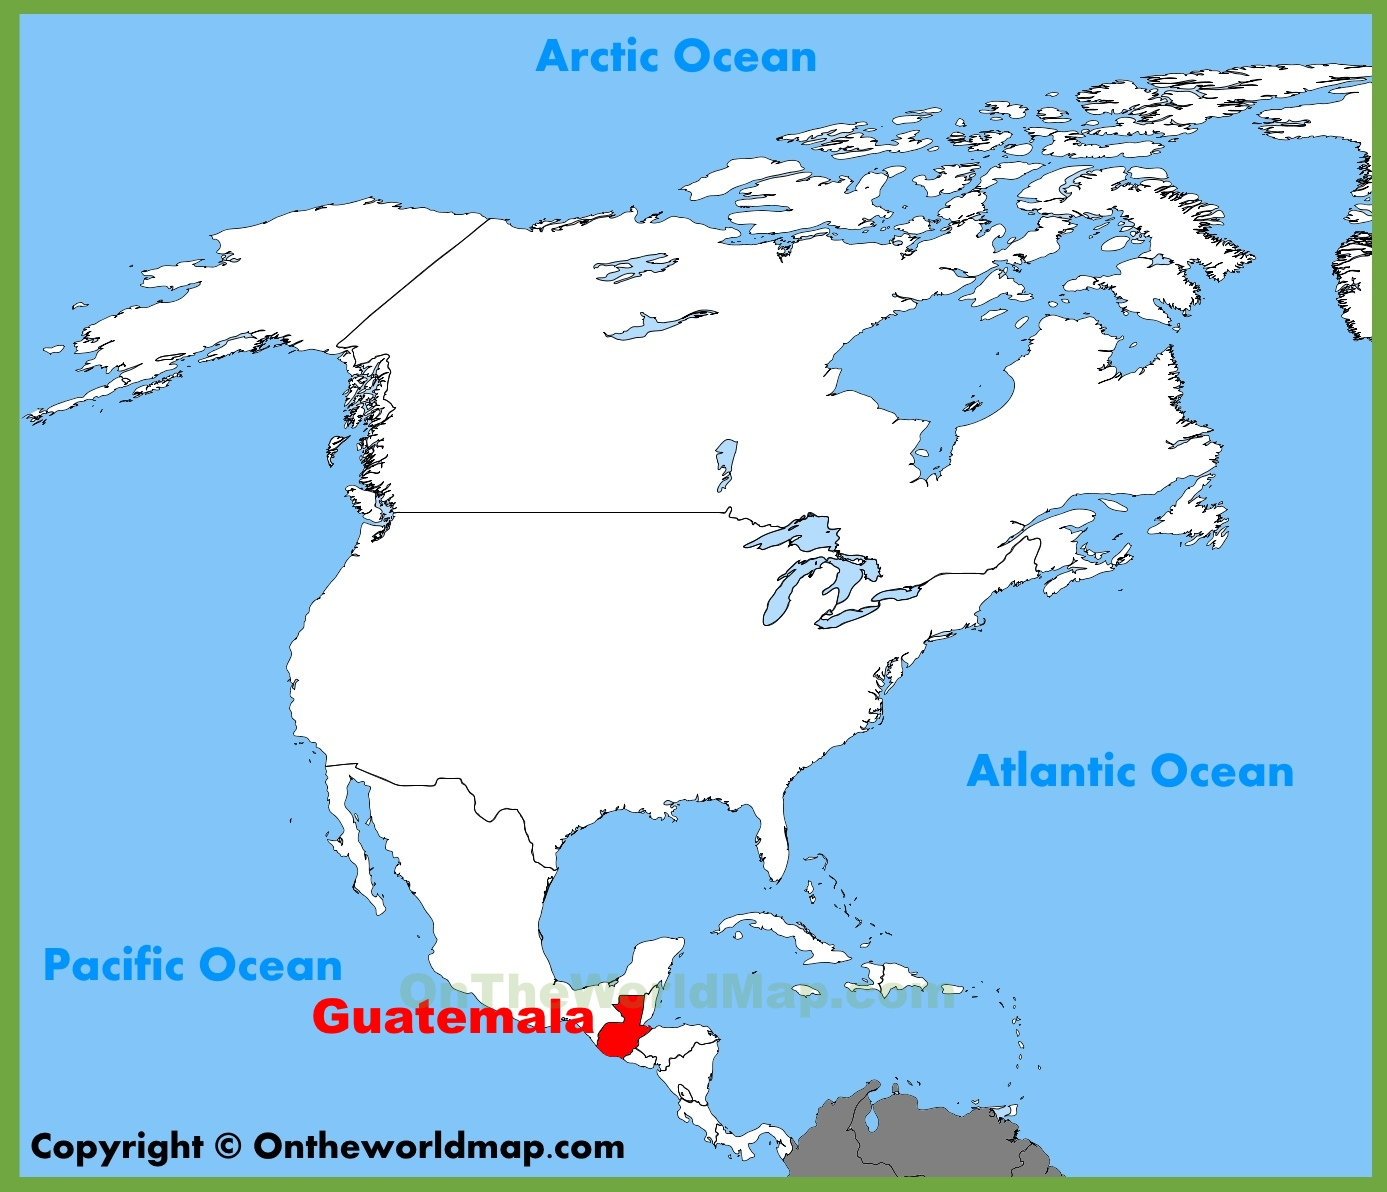 Guatemala location on the North America map on panama map, costa rica, spain map, guyana map, central america, middle east map, ambergris caye map, california map, cuba map, guatemala city, dominican republic, russia map, peru map, puert rico map, antigua guatemala, mexico map, latin america, china map, haiti map, caribbean map, luxembourg map, puerto rico map, el salvador, united states map, dominican republic map, jamaica map, world map,